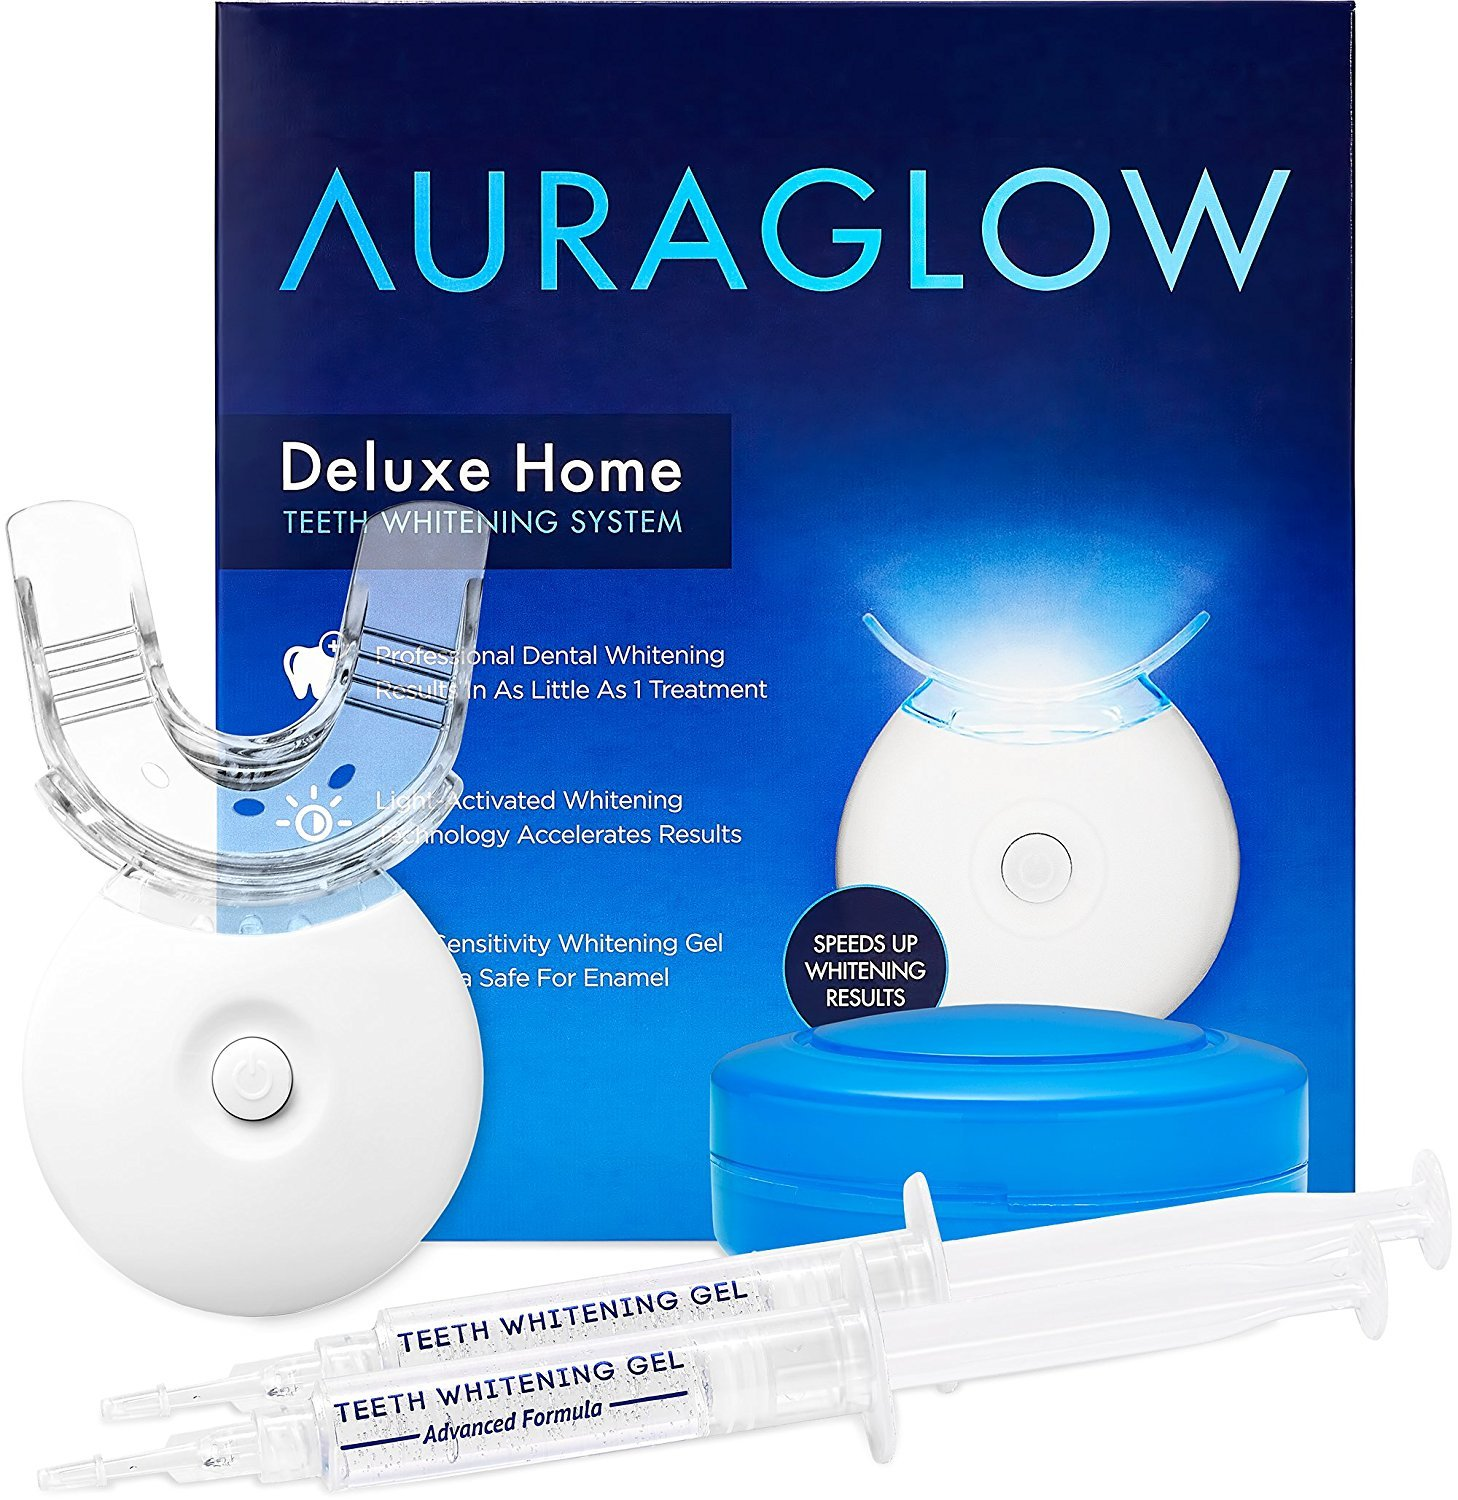 AuraGlow Teeth Whitening LED Light Kit, 35% Carbamide Peroxide, (2) 5ml Gel Syringes, Mouth Tray and Case